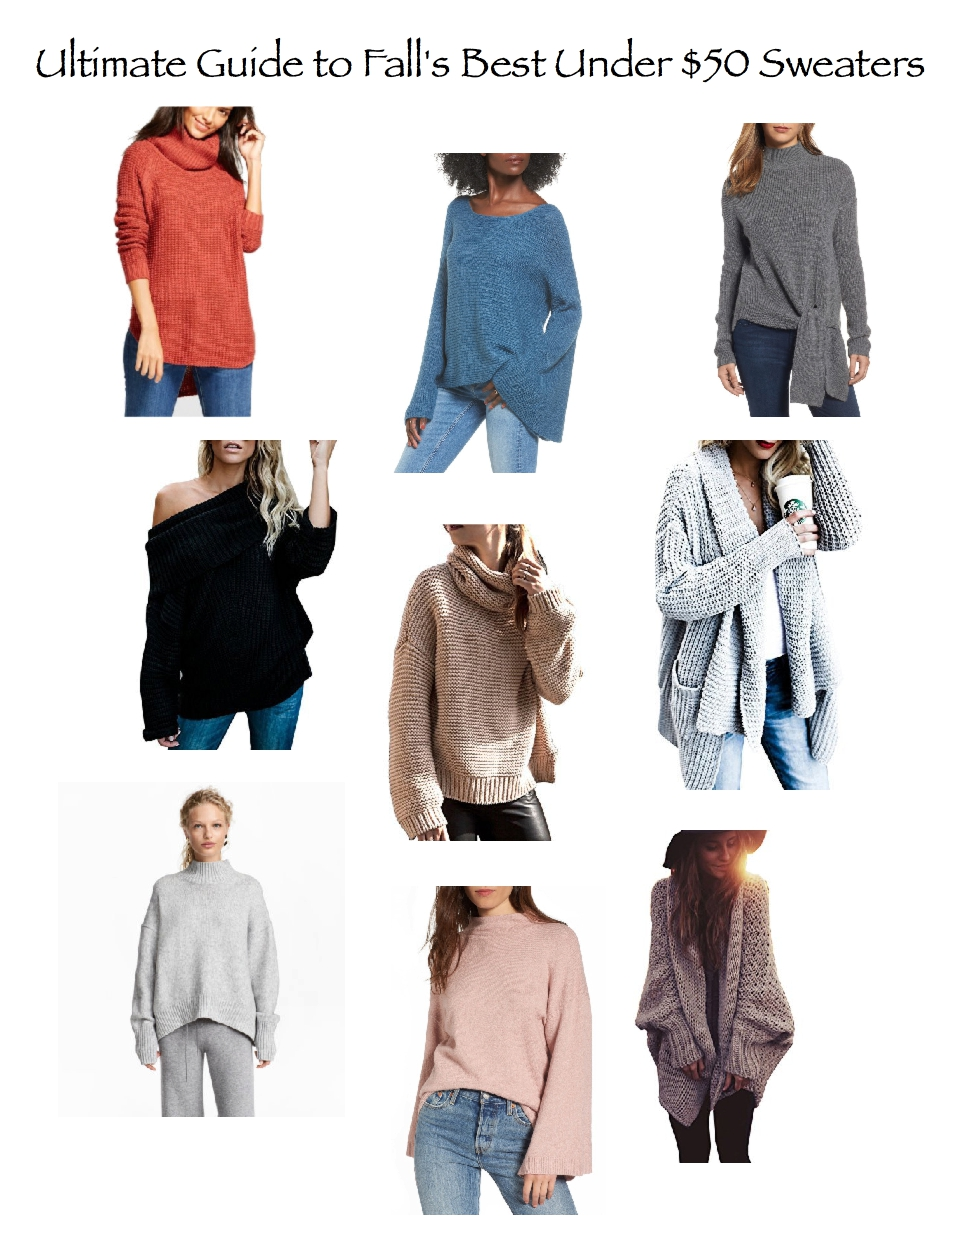 2017 ultimate guide to falls best under $50 sweaters, best sweater brands, chunky sweaters, cozy sweaters, under 50 sweaters